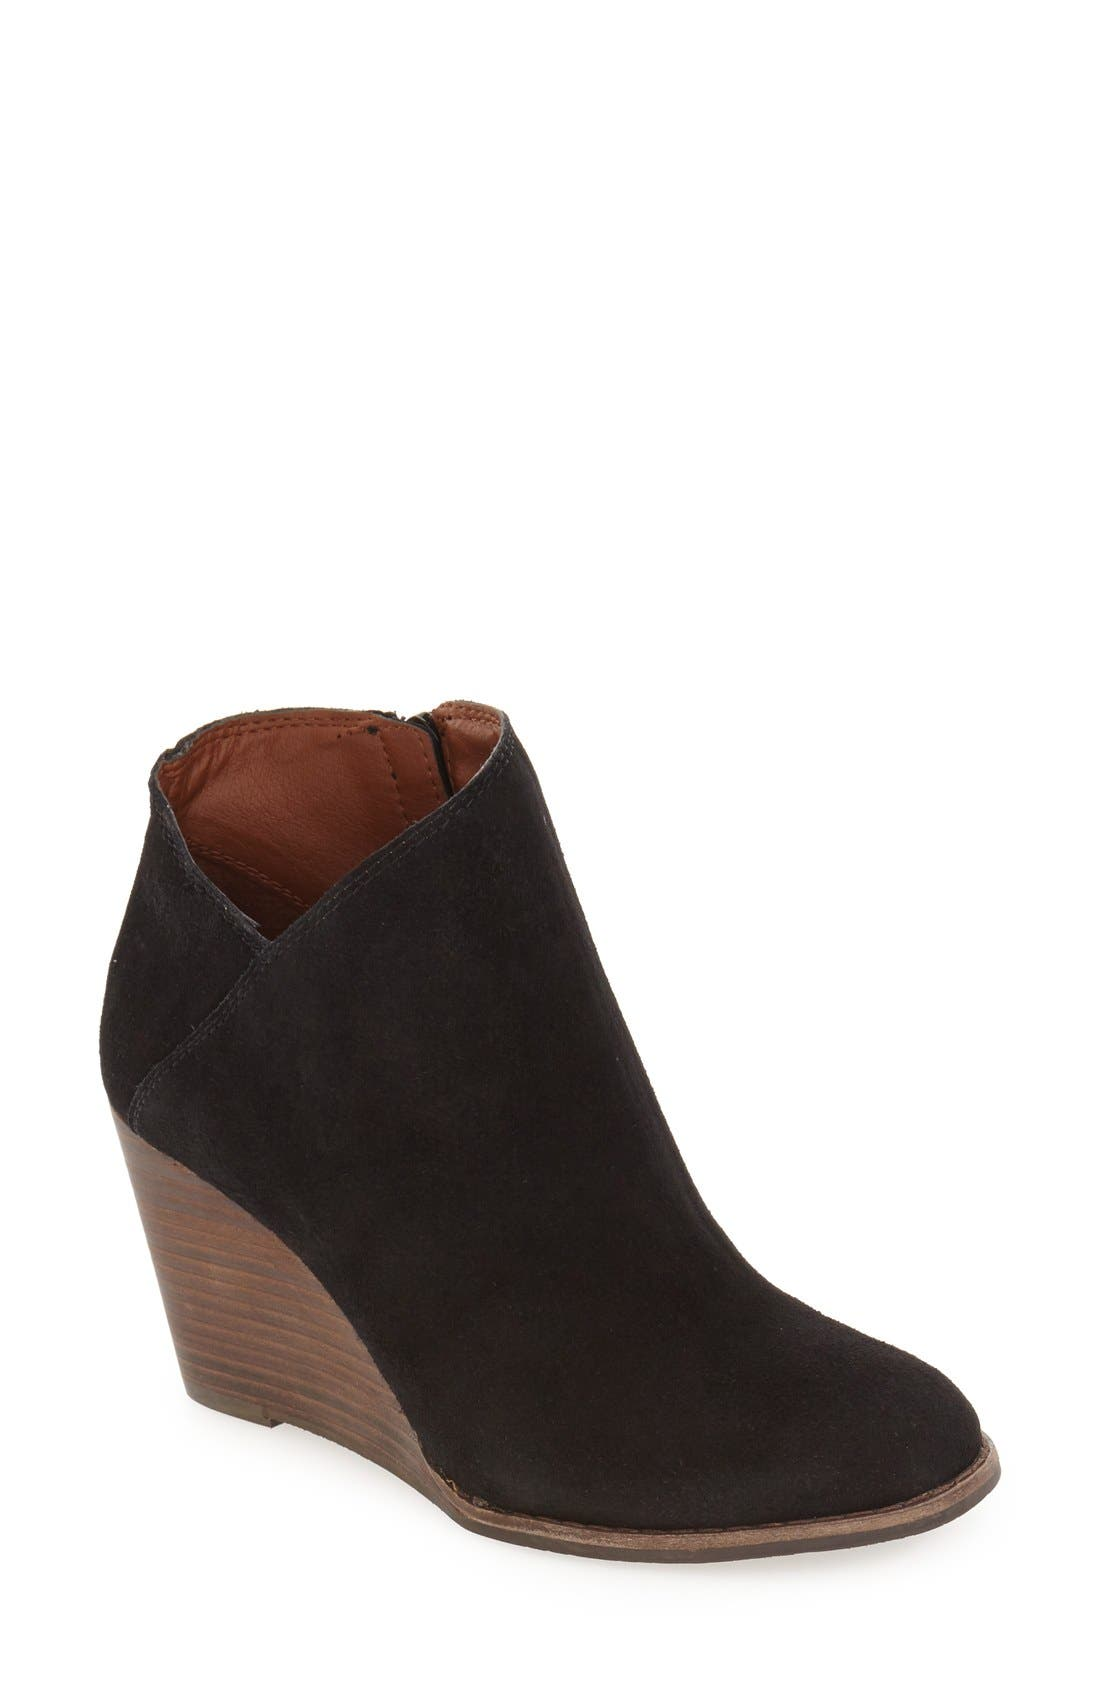 LUCKY BRAND 'Yakeena' Zip Wedge Bootie